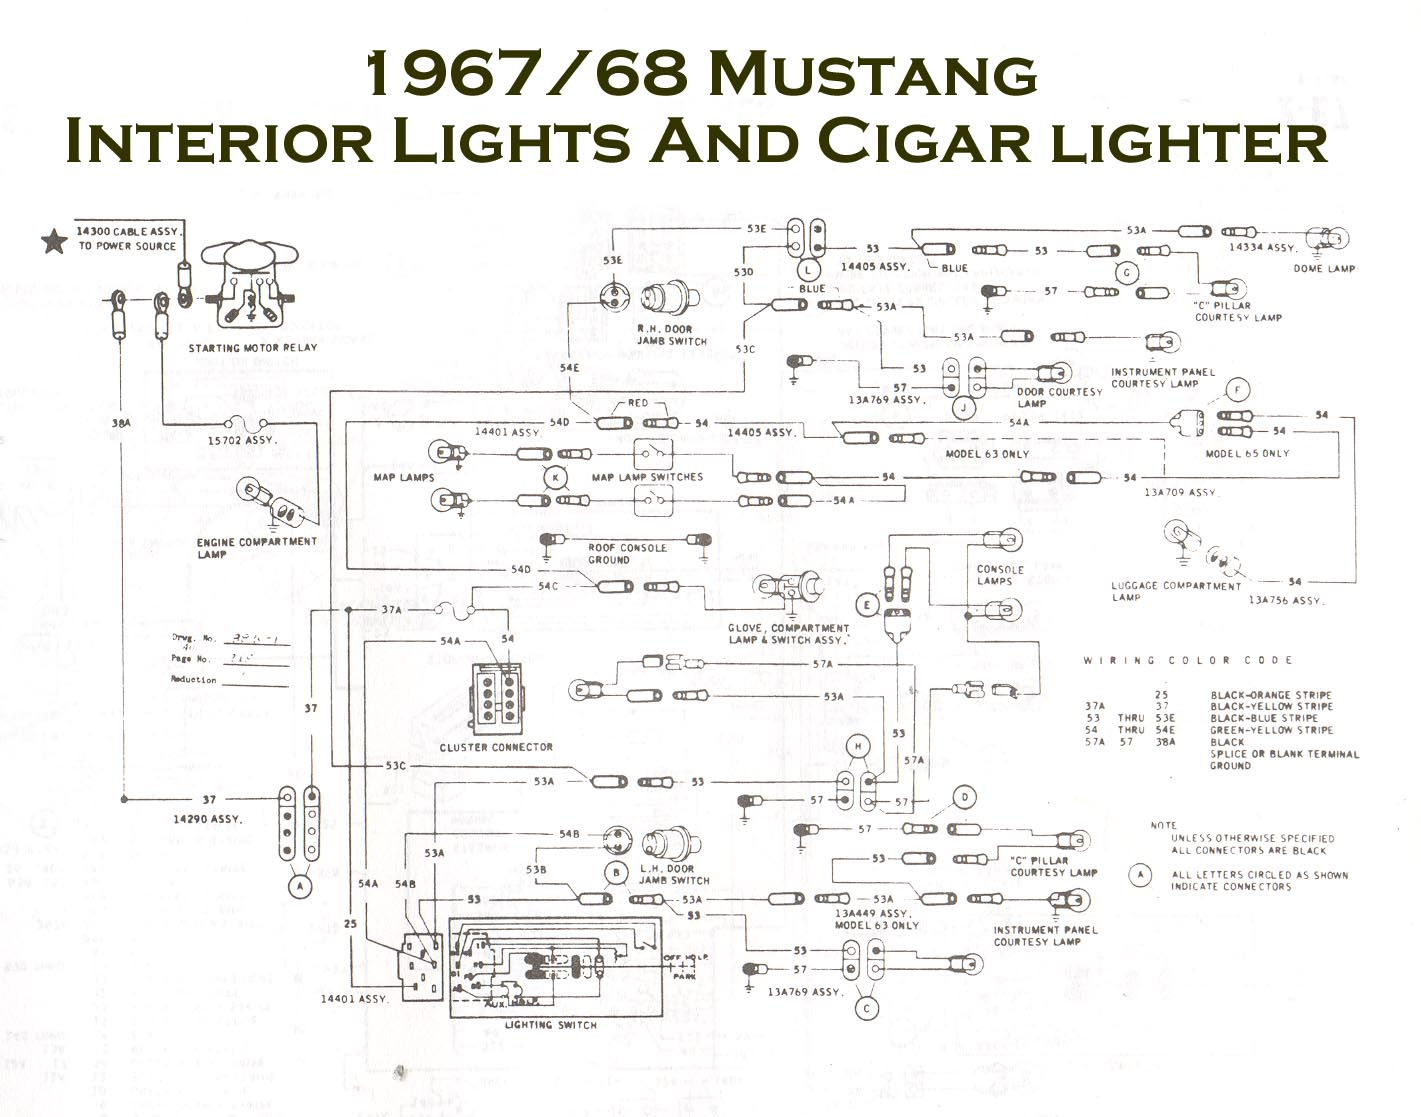 Vintage Mustang Wiring Diagrams 1972 Ford F100 Headlight Switch Diagram 1967 68 Console